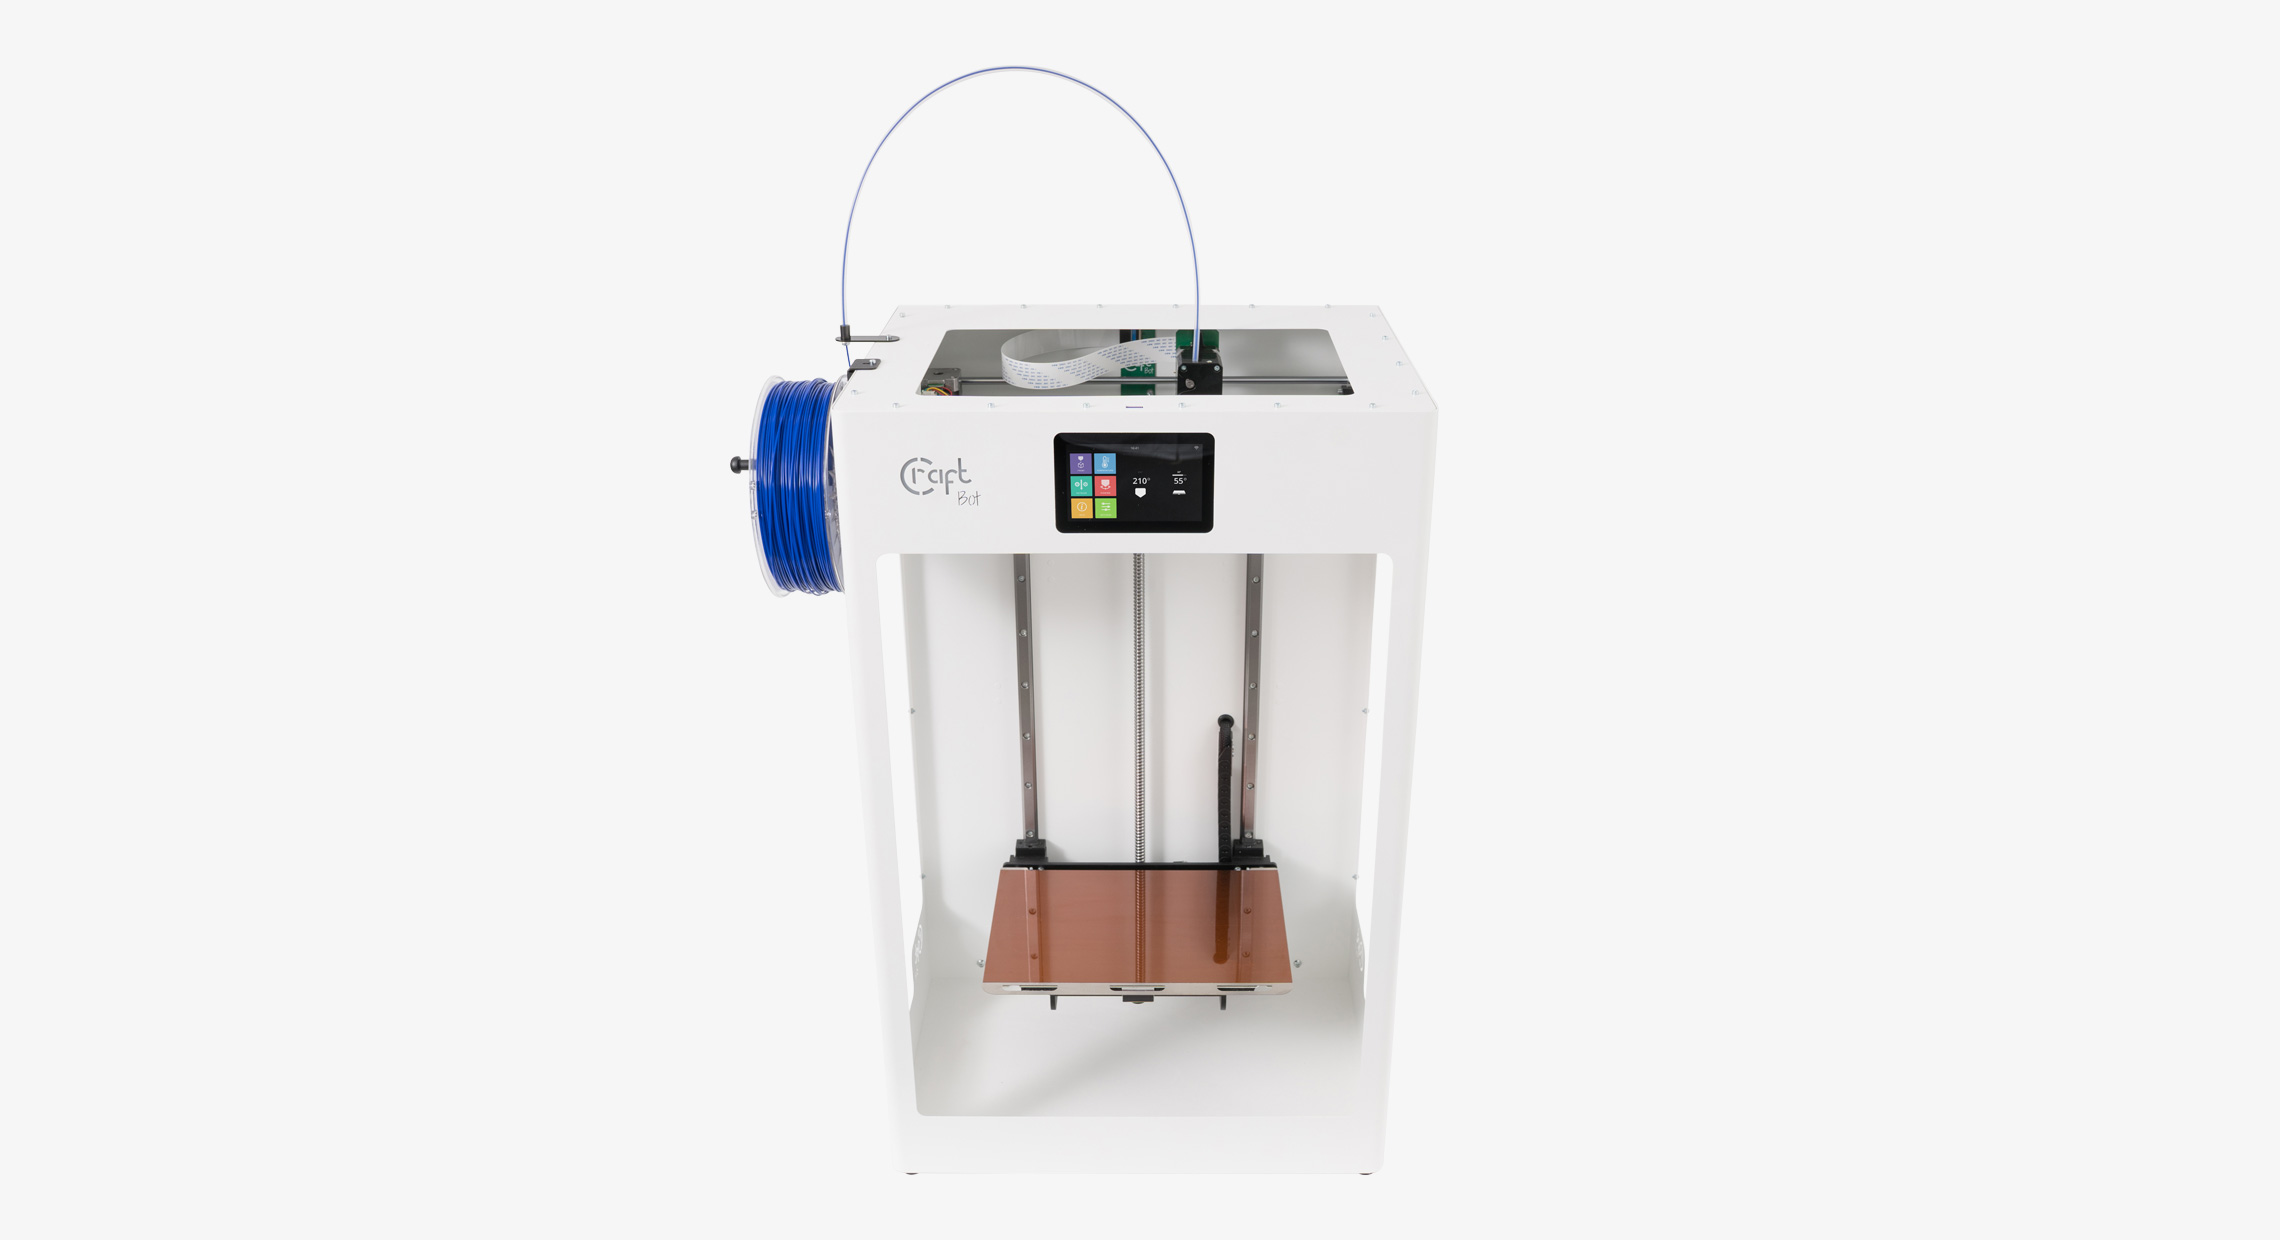 3D printing, 3D printer, Craftbot Flow XL, Large scale, Additive manufacturing, Printer bed, Compact workhorse, FDM printer, High-technology features